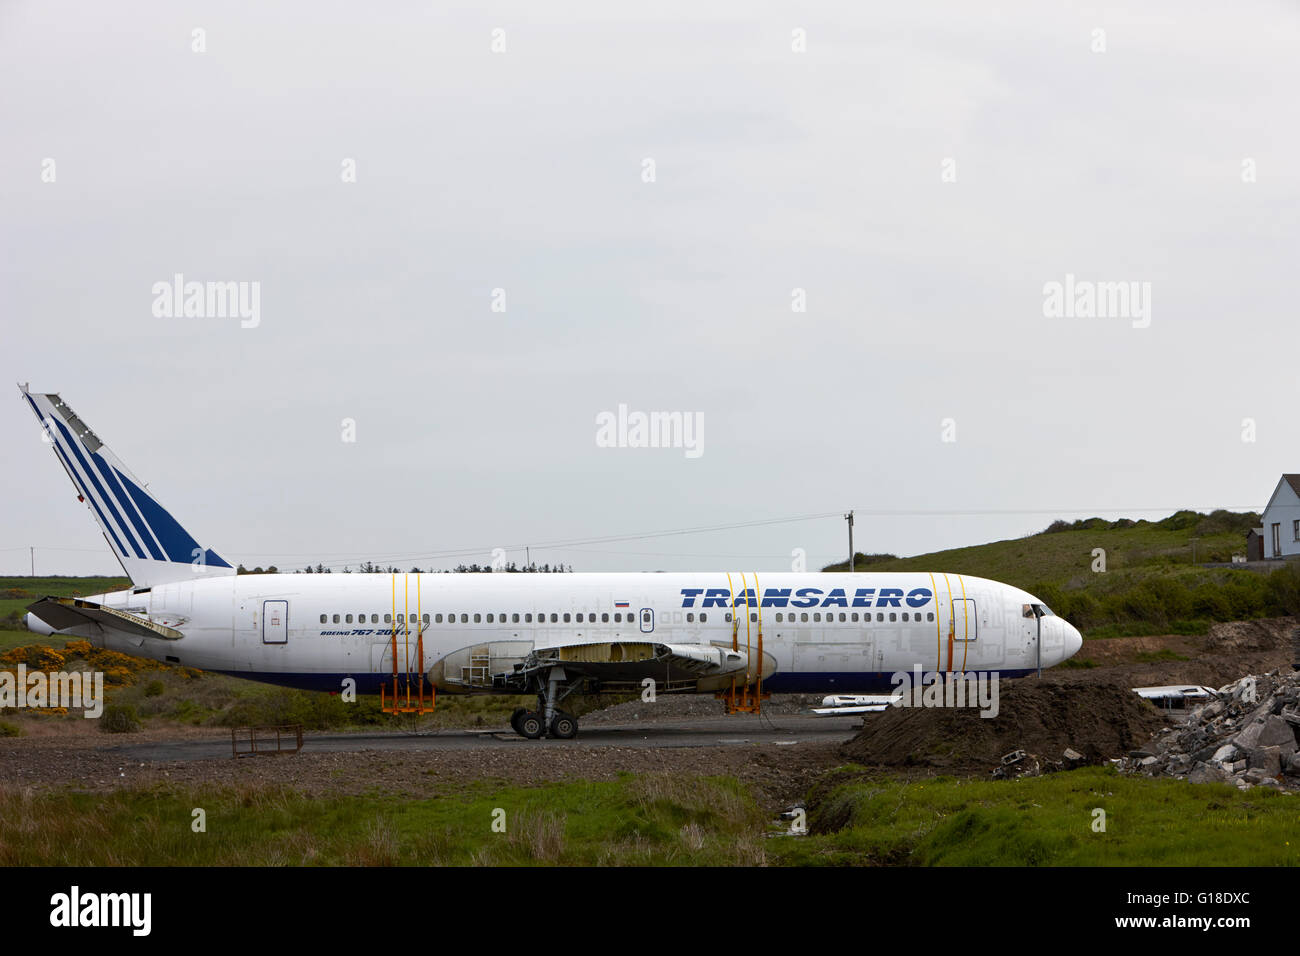 Transaero Boeing 767 To Be Used As A Glamping Campsite Quirky Glamping  Nights Village Enniscrone County